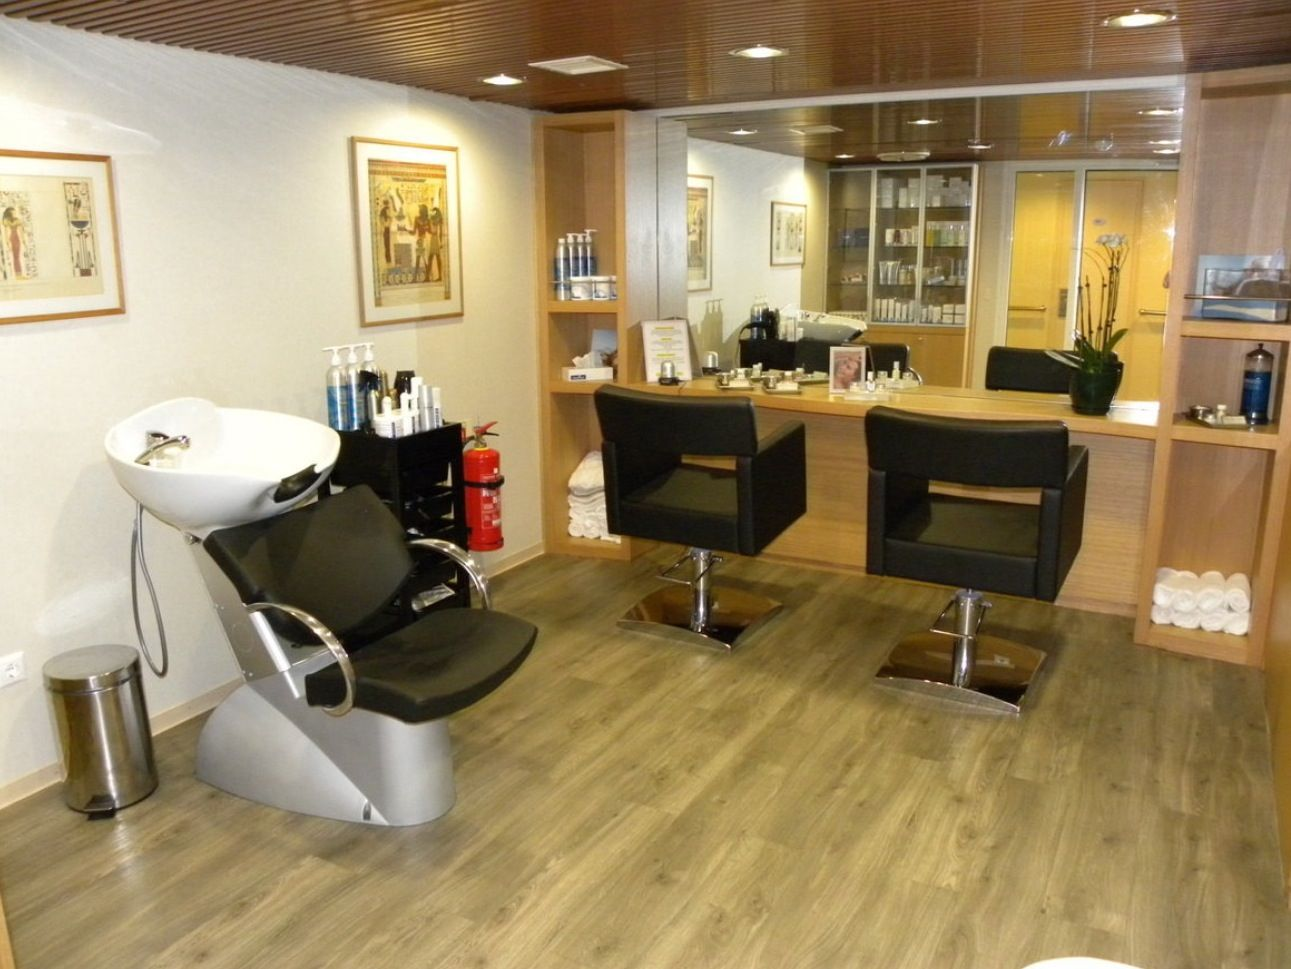 Salons Design Small Salon Perfect Want Want Want Just For Me